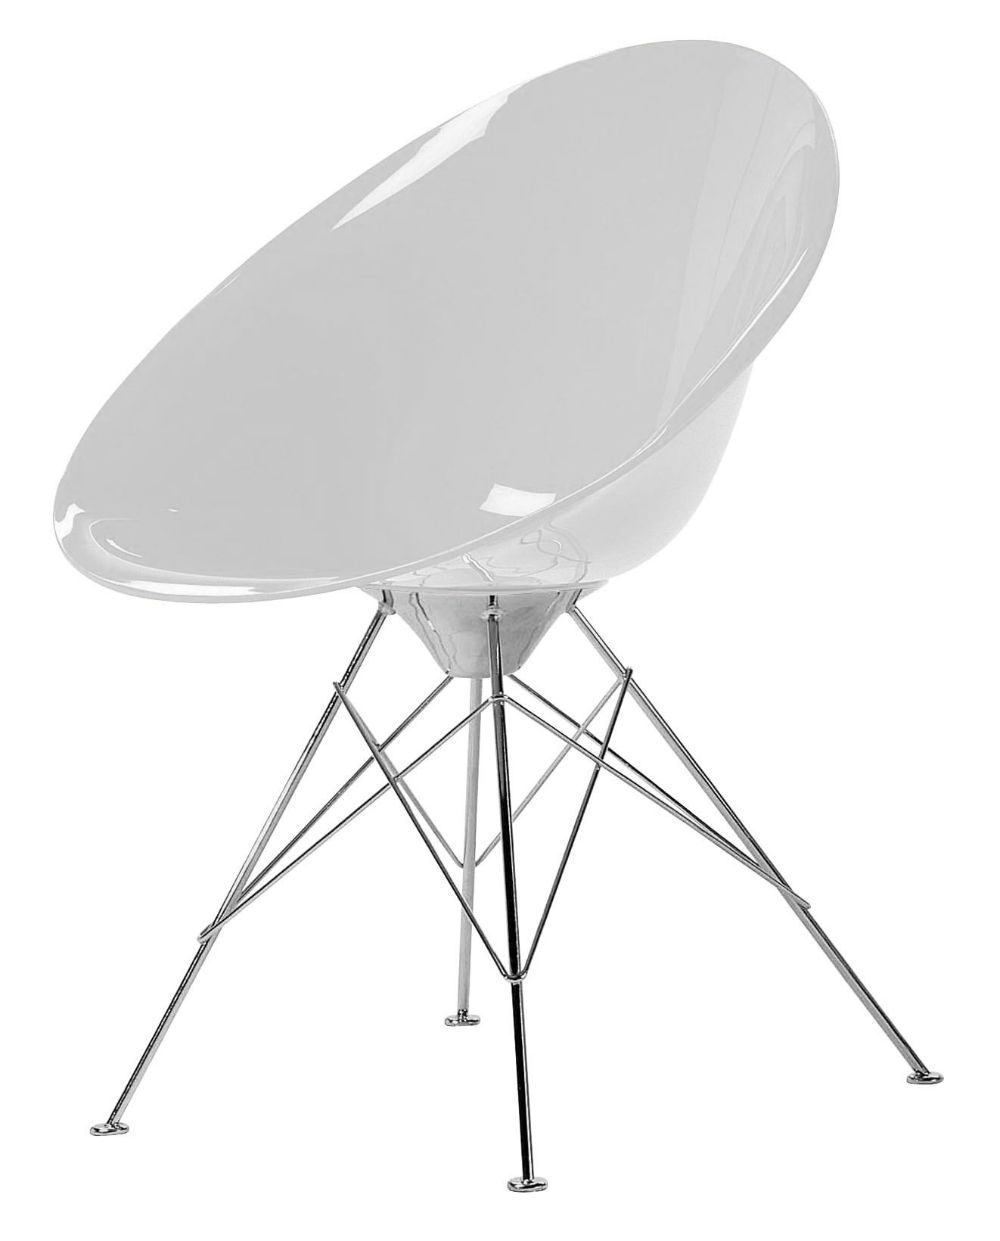 kartell eros chair with structure of steel  -  imagen  de eros chair with structure of steel chromed of four patas